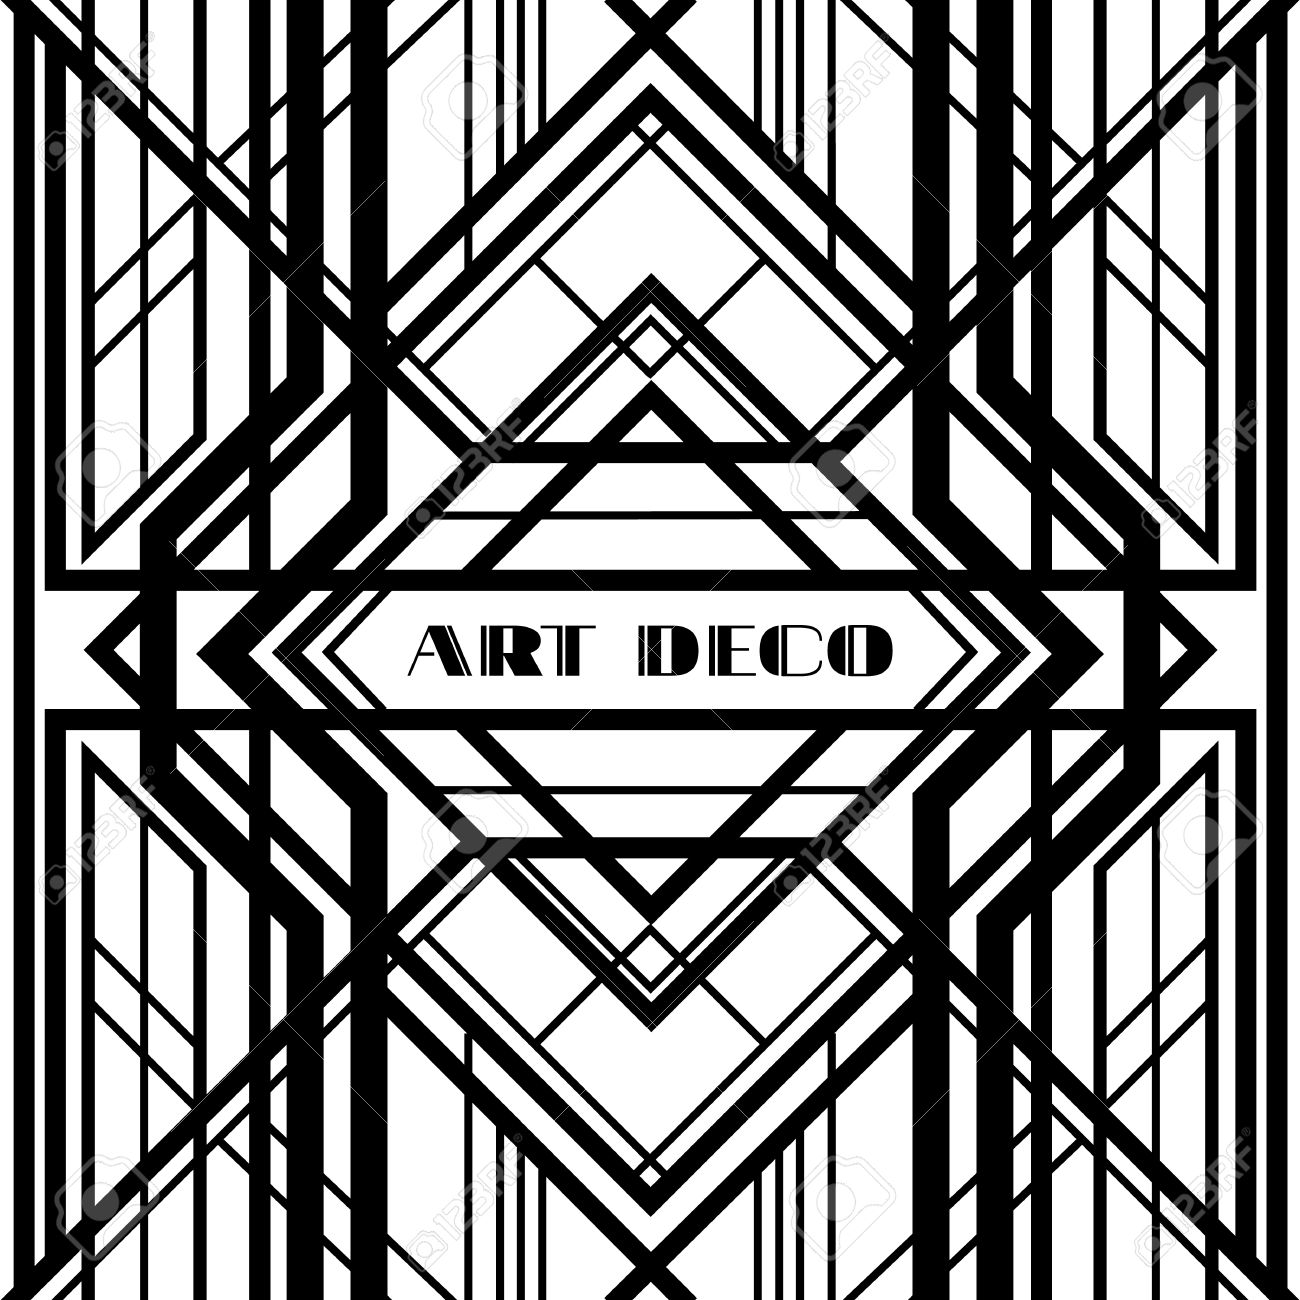 Art Deco Grille, Metallic Abstract, Geometric Pattern In The ...